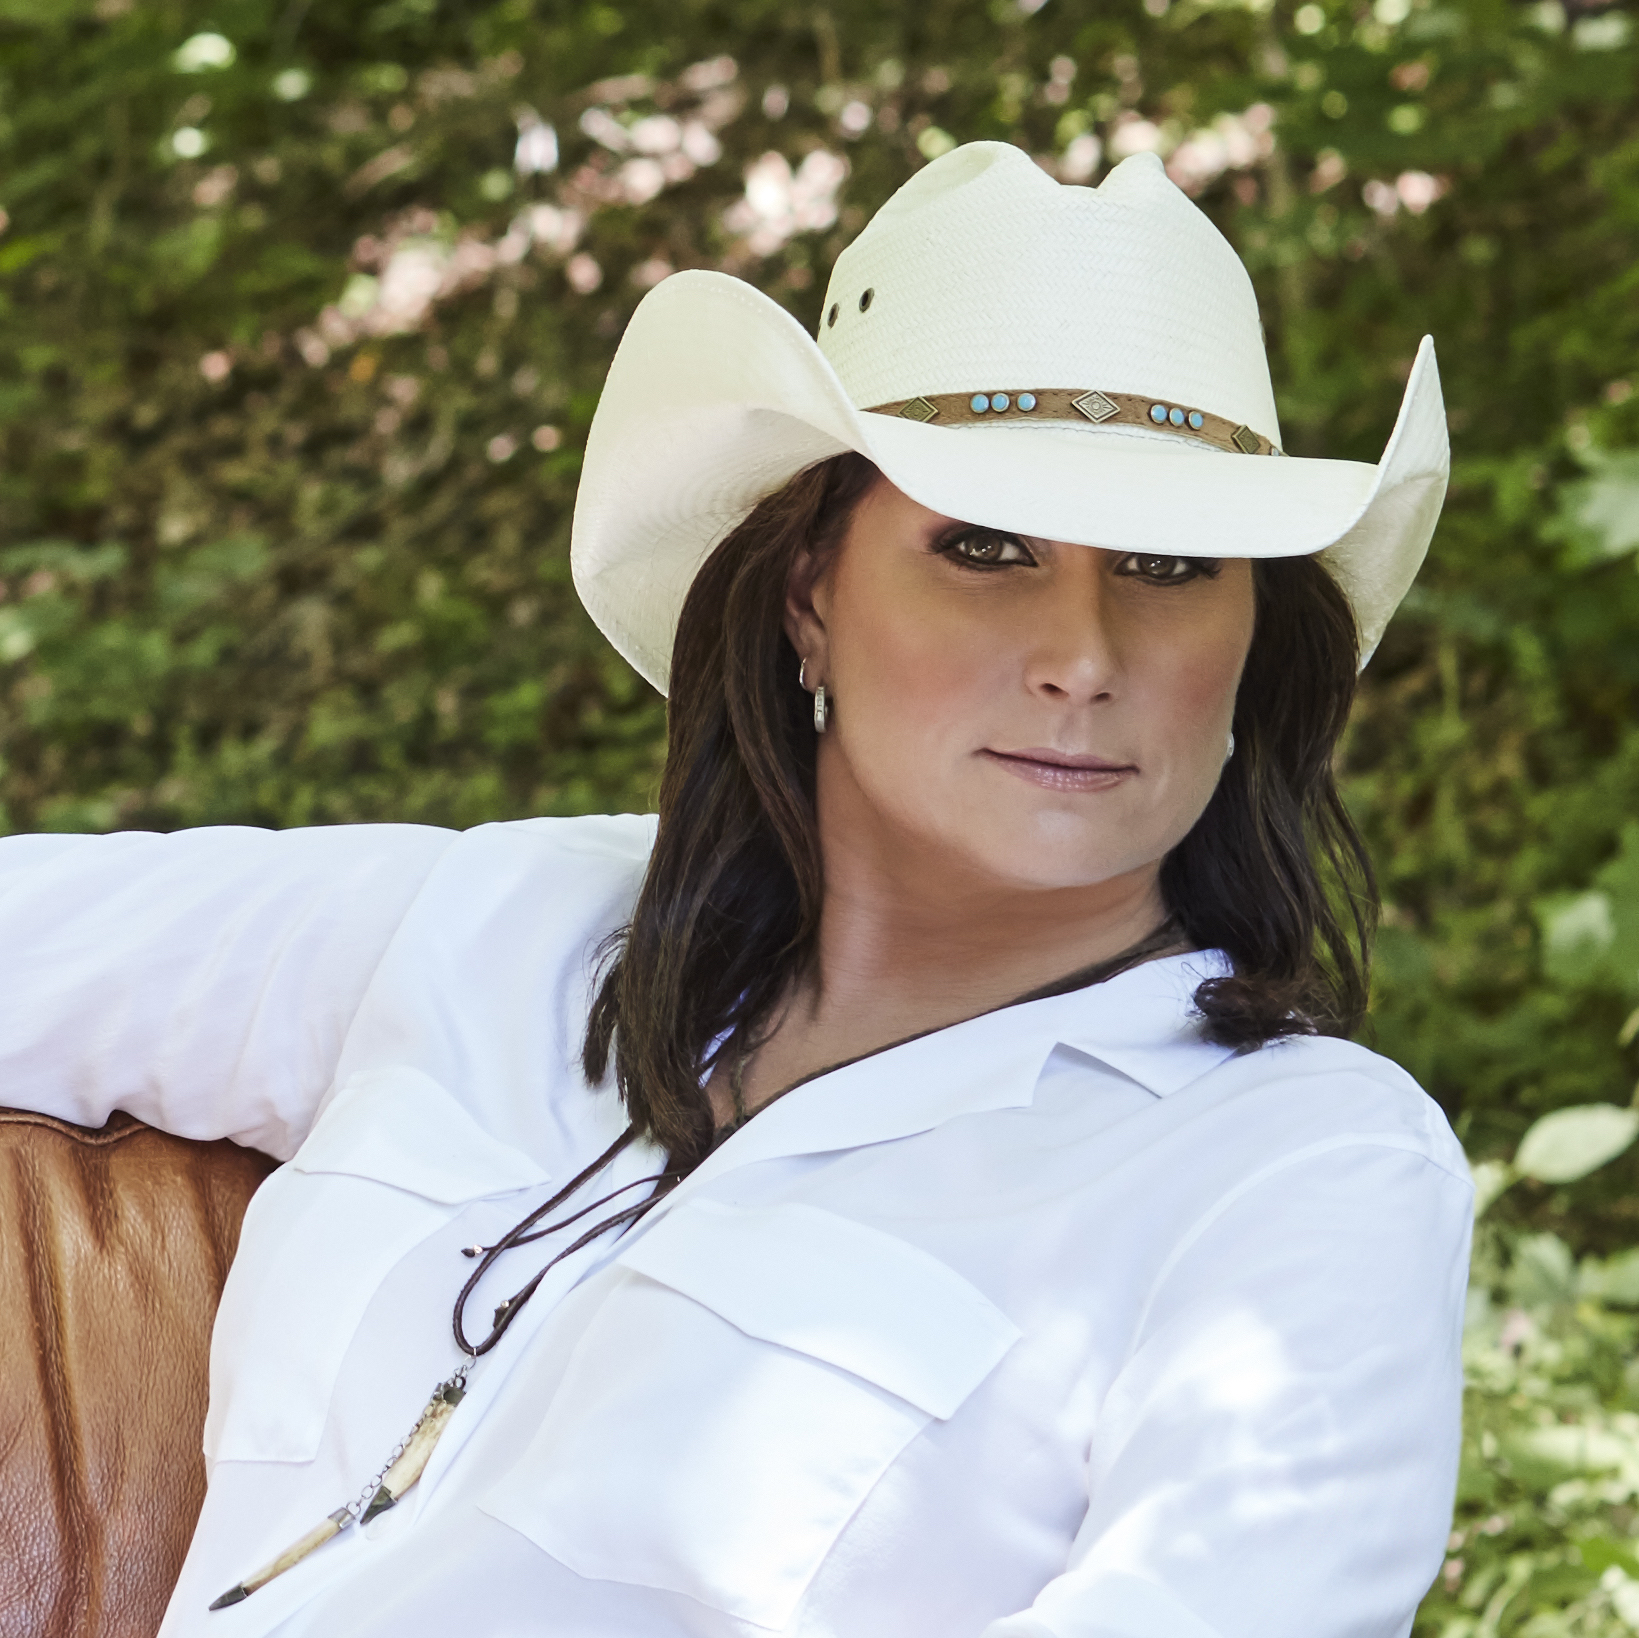 Terri Clark comest to Alaska for a fundraising concert series in 2021